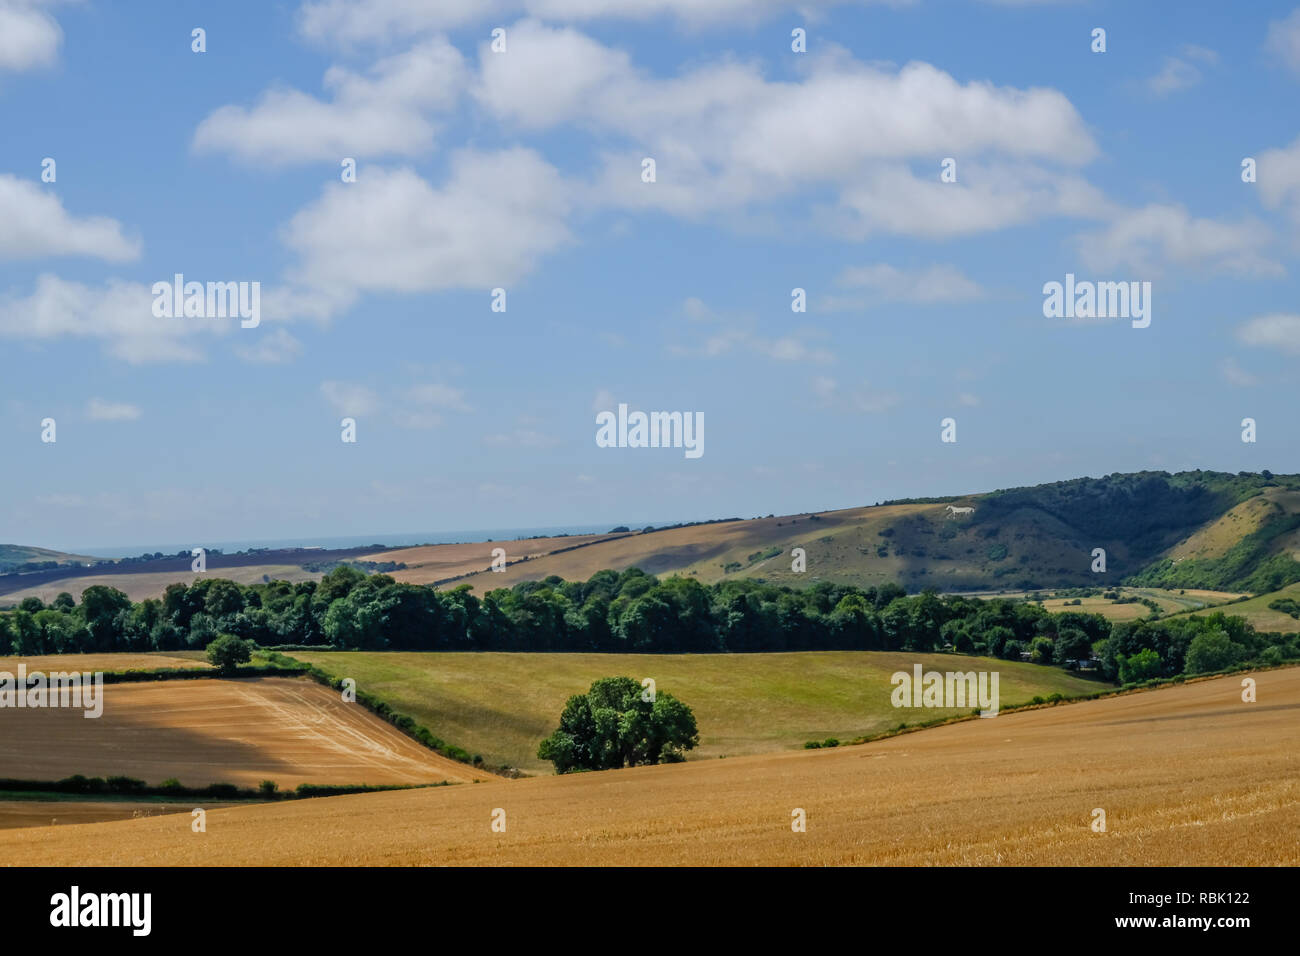 South Downs National Park in Sussex, a view of the beautiful countryside.  Taken in summer on a bright blue sky aftrnoon. - Stock Image